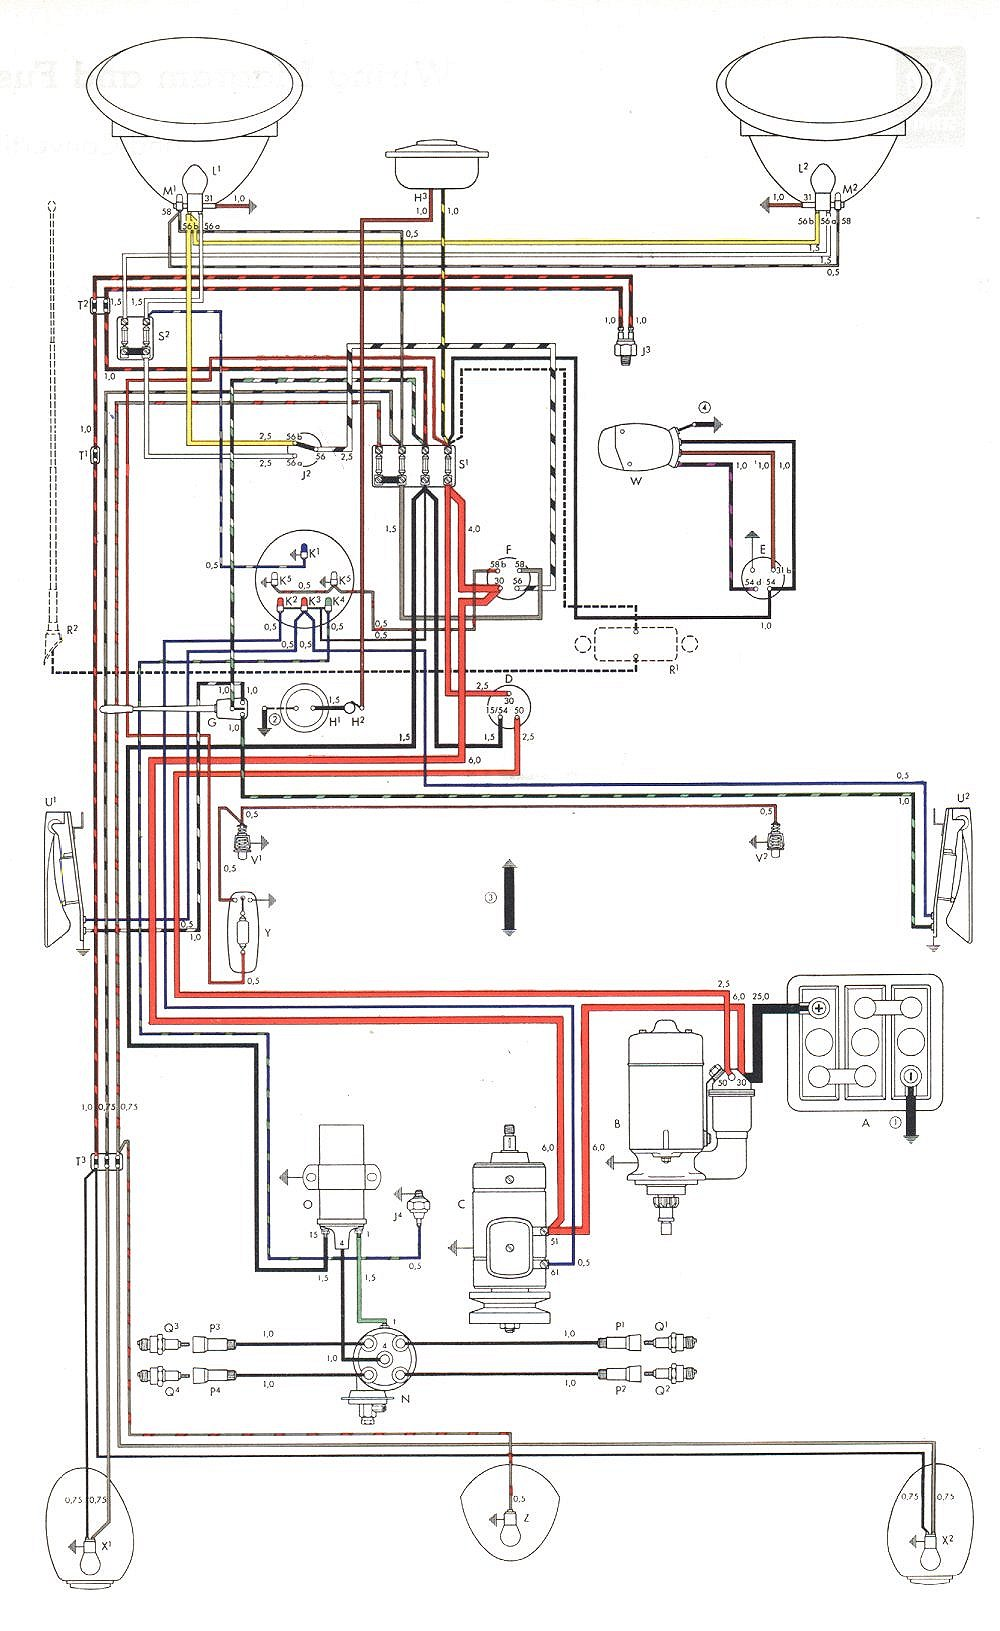 hight resolution of 58 vw alternator wiring data wiring diagram schema rh 50 diehoehle derloewen de 2005 jetta alternator wiring vw generator to alternator conversion